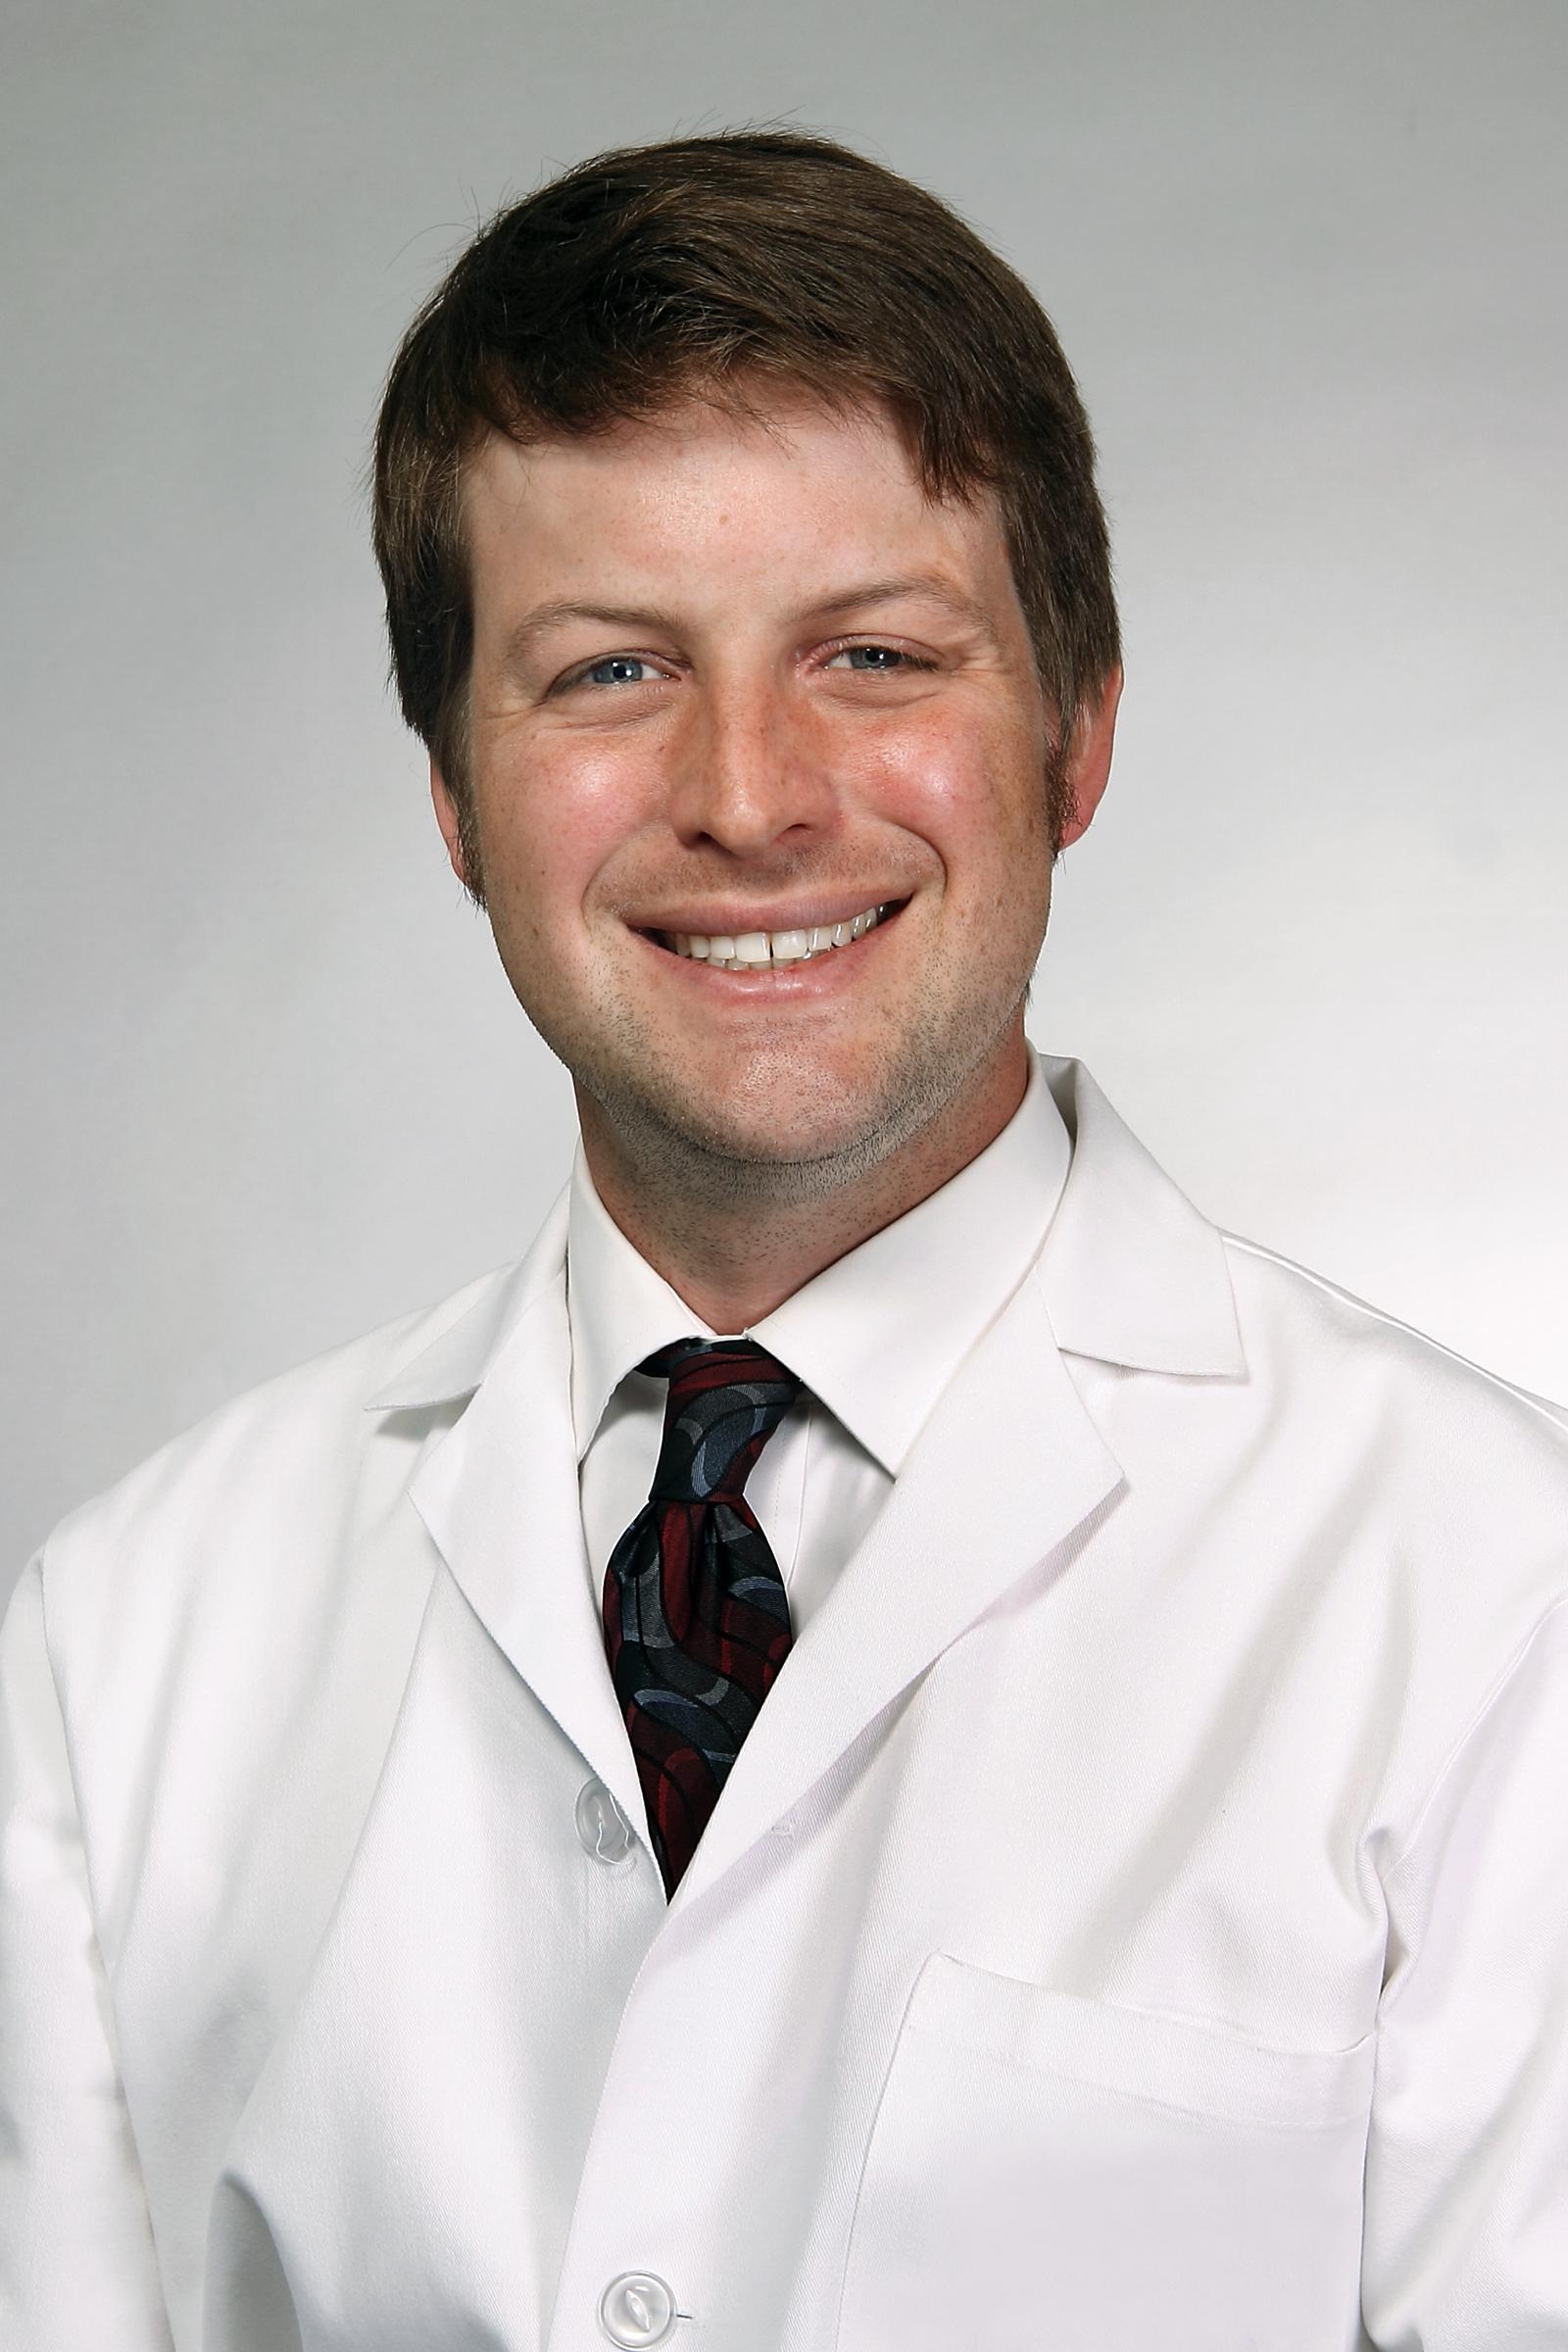 Drexell Hunter Boggs, MD